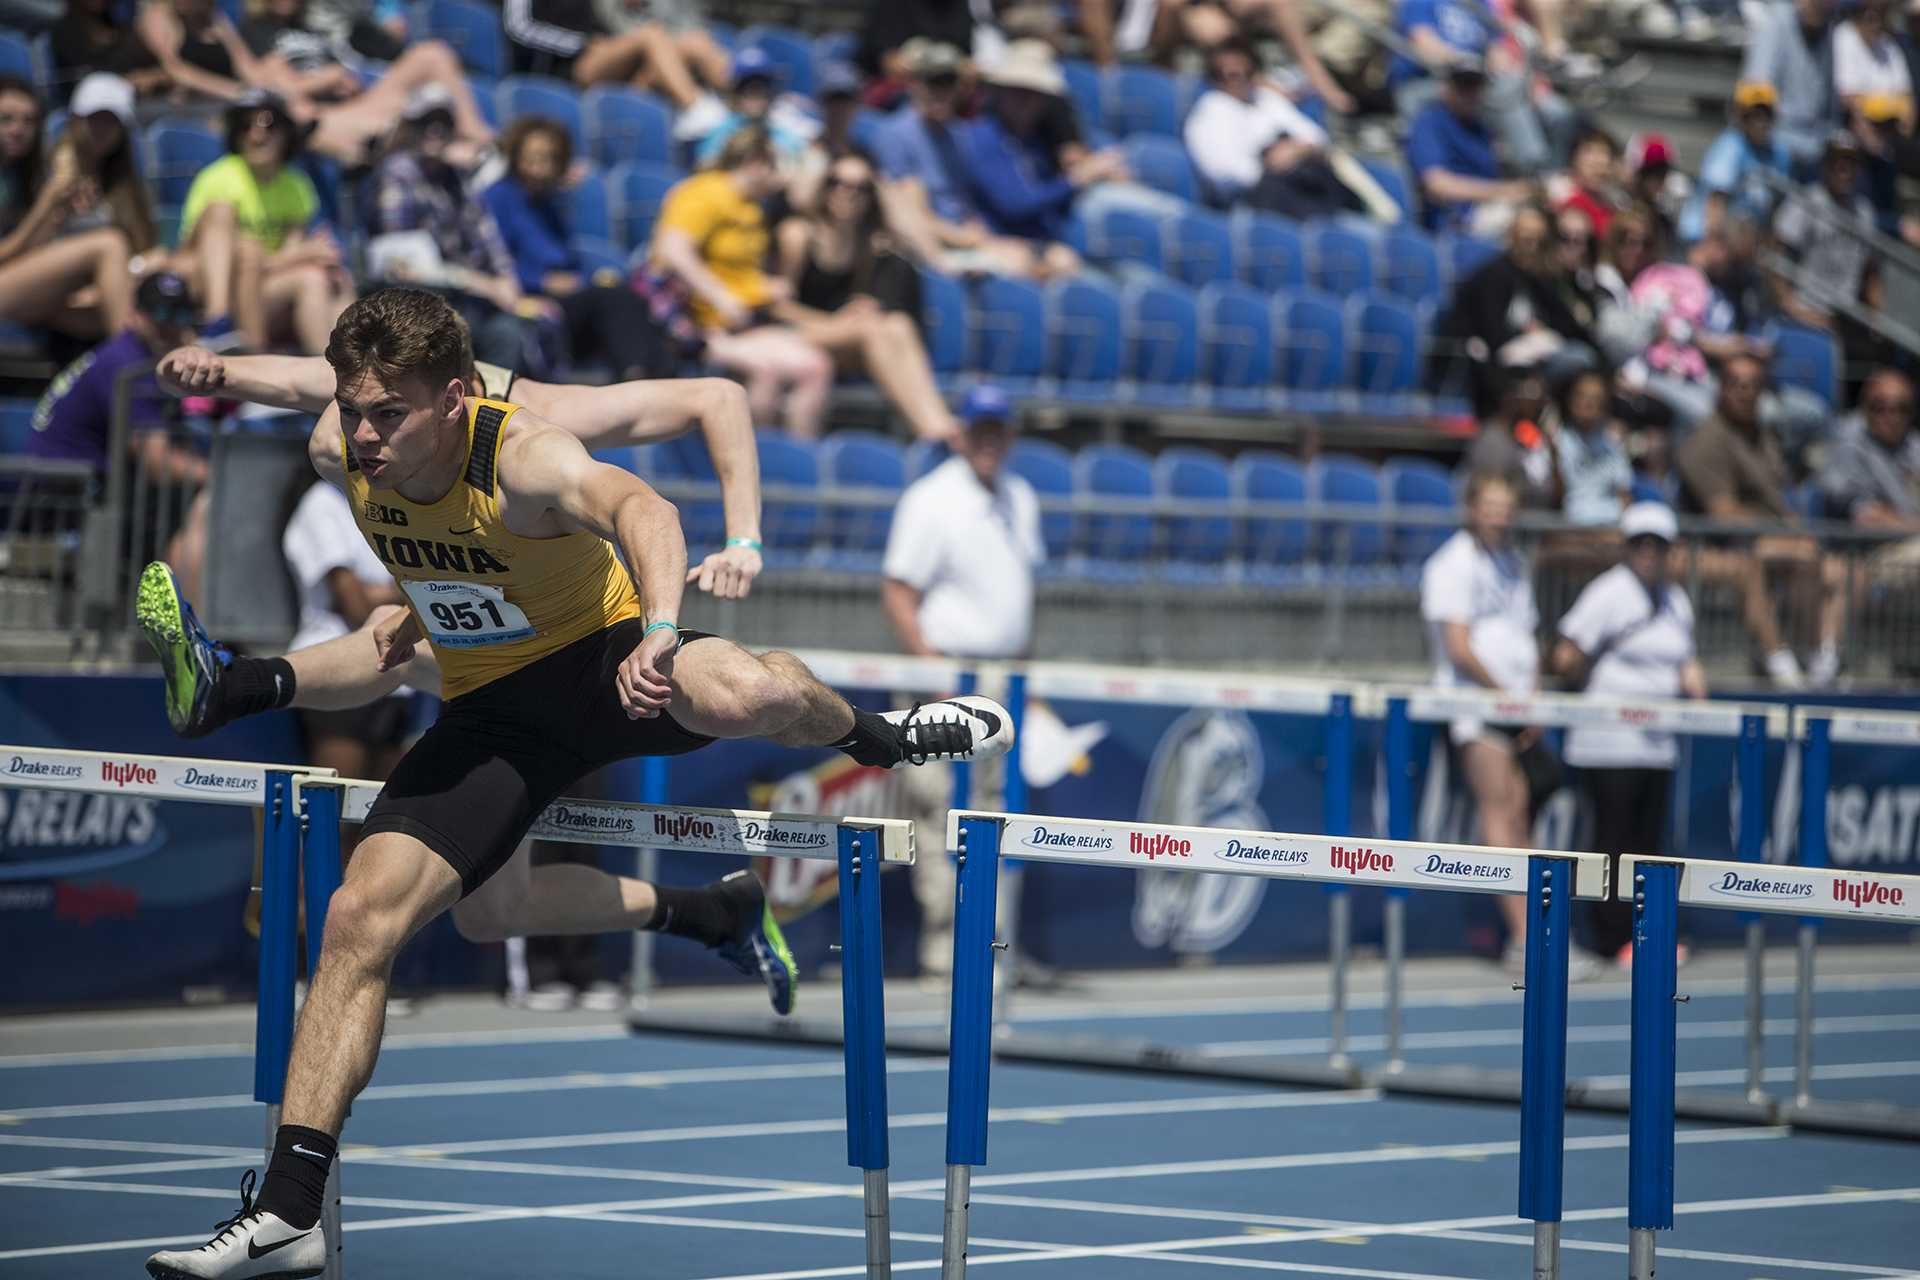 Iowa's Chris Douglas, right, competes for first in the men's 110 meter hurdles during the 2018 Drake Relays at Drake Stadium in Des Moines, Iowa on Friday, April 27, 2018. Douglas finished first with a time of 14.03. (Ben Allan Smith/The Daily Iowan)